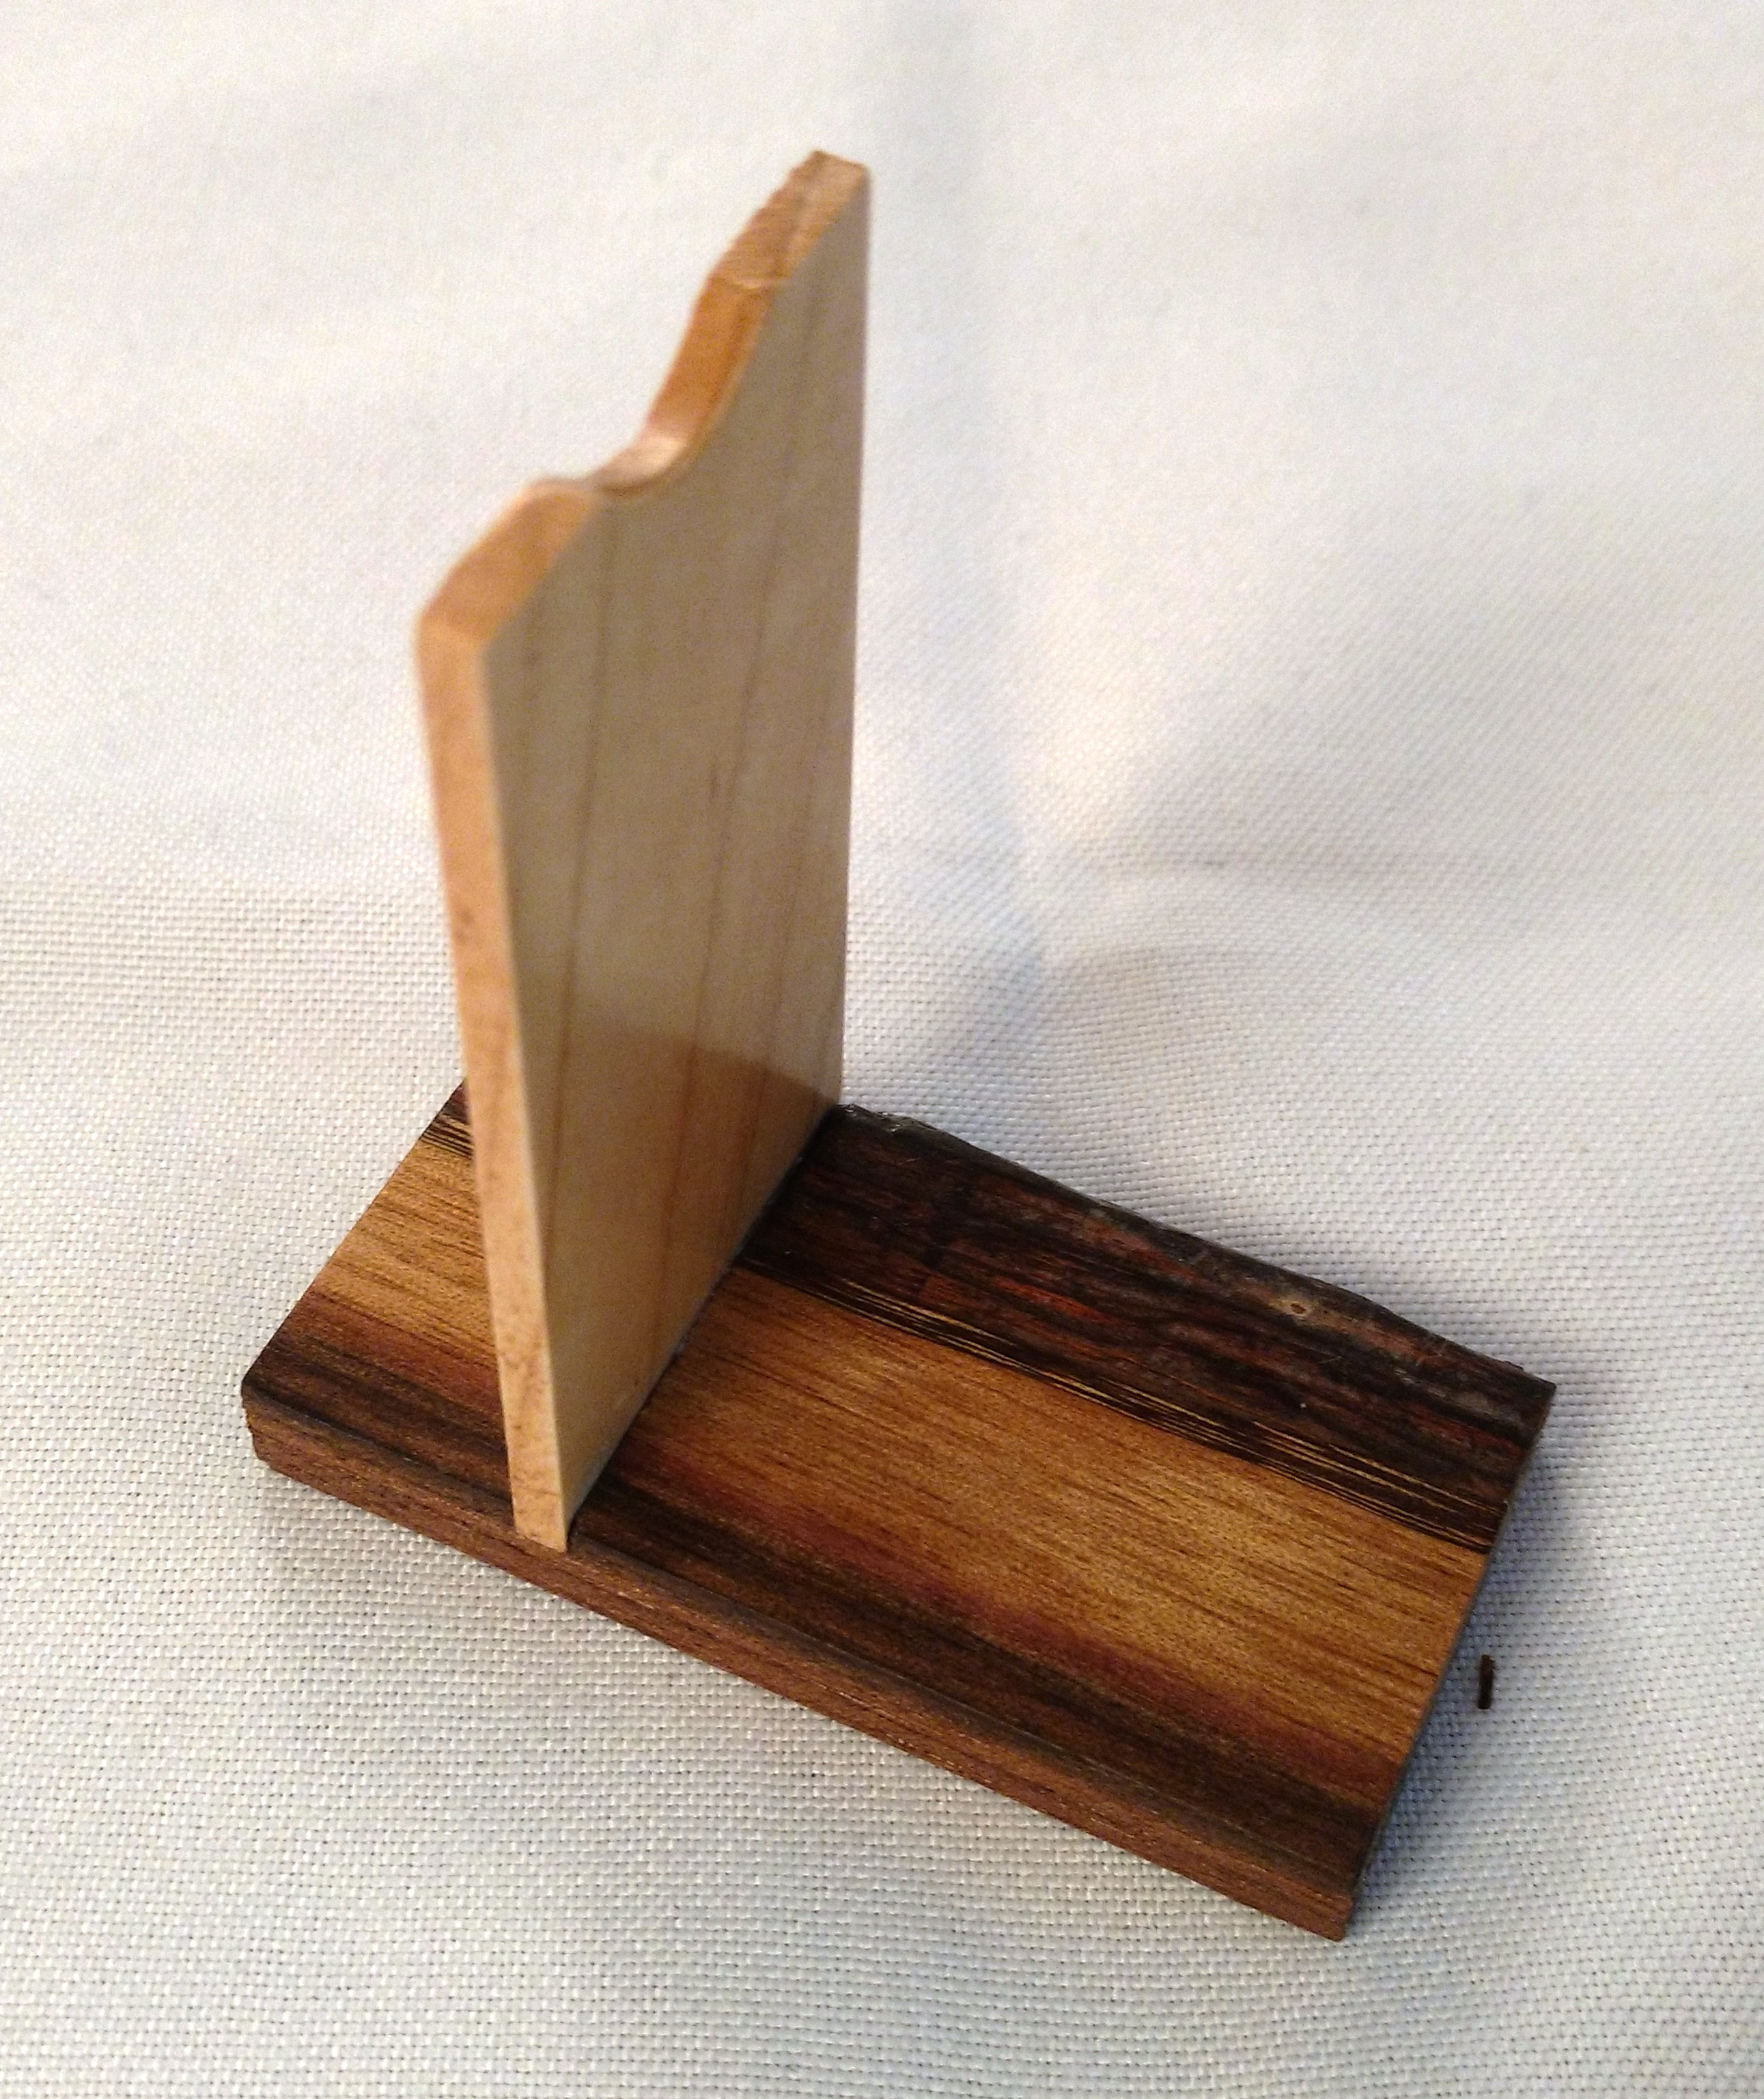 Small Wood stand B for wood tube kaleidoscopes by Dan Land